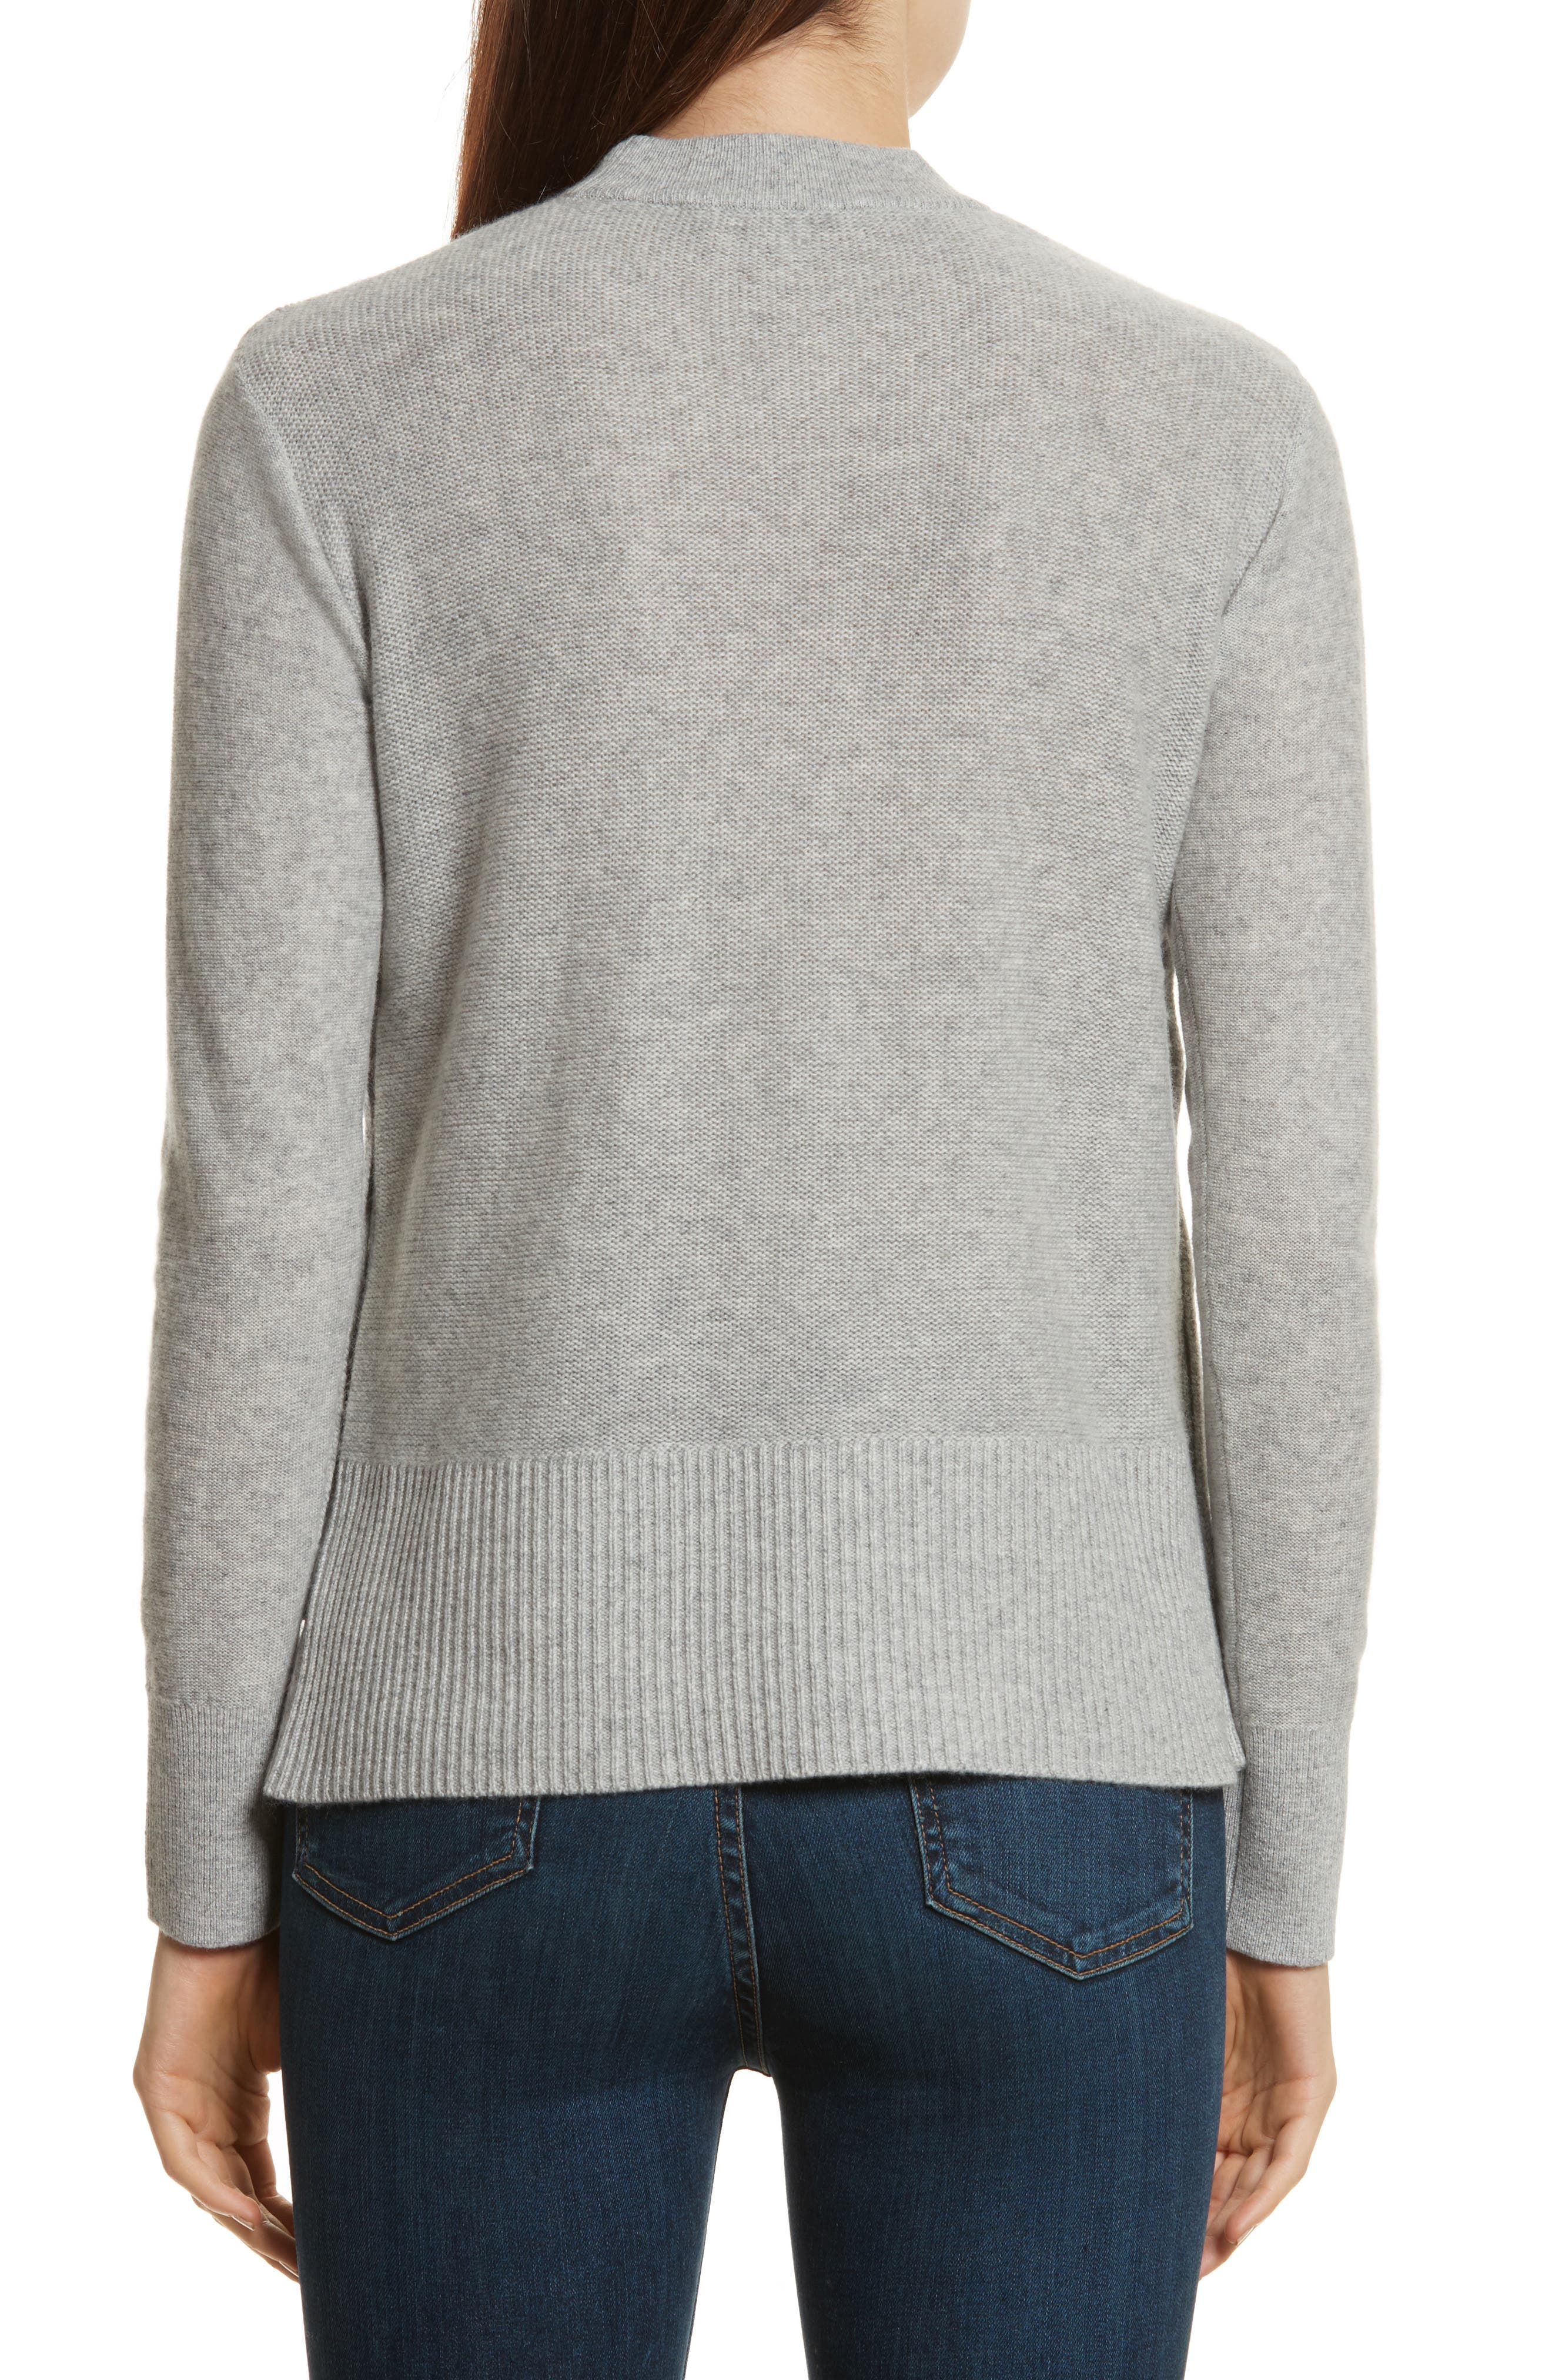 Kenna Cashmere Sweater,                             Alternate thumbnail 2, color,